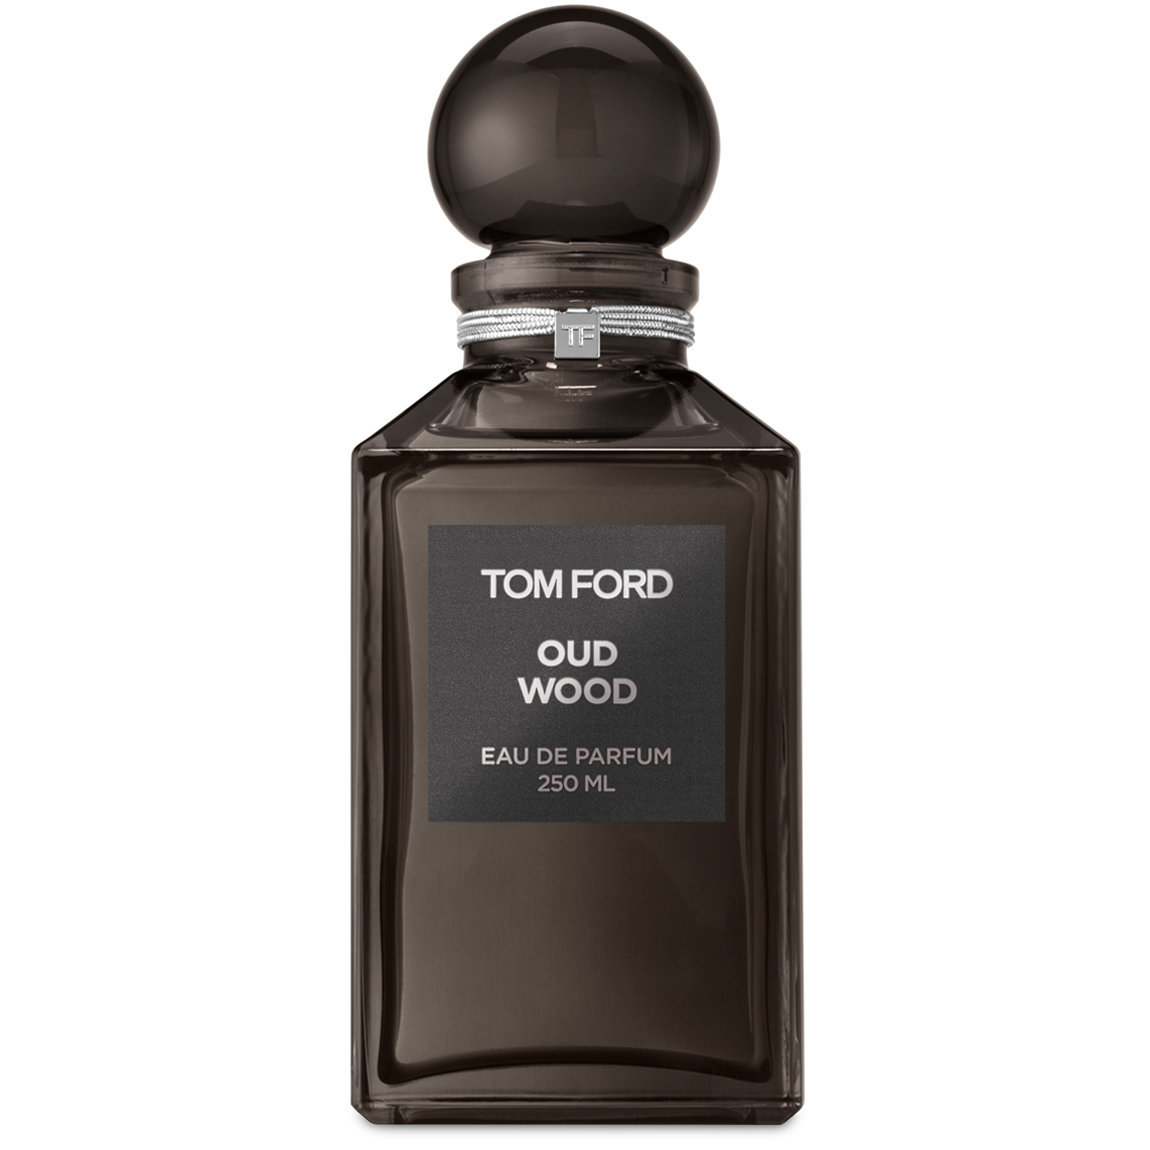 TOM FORD Oud Wood 250 ml product swatch.